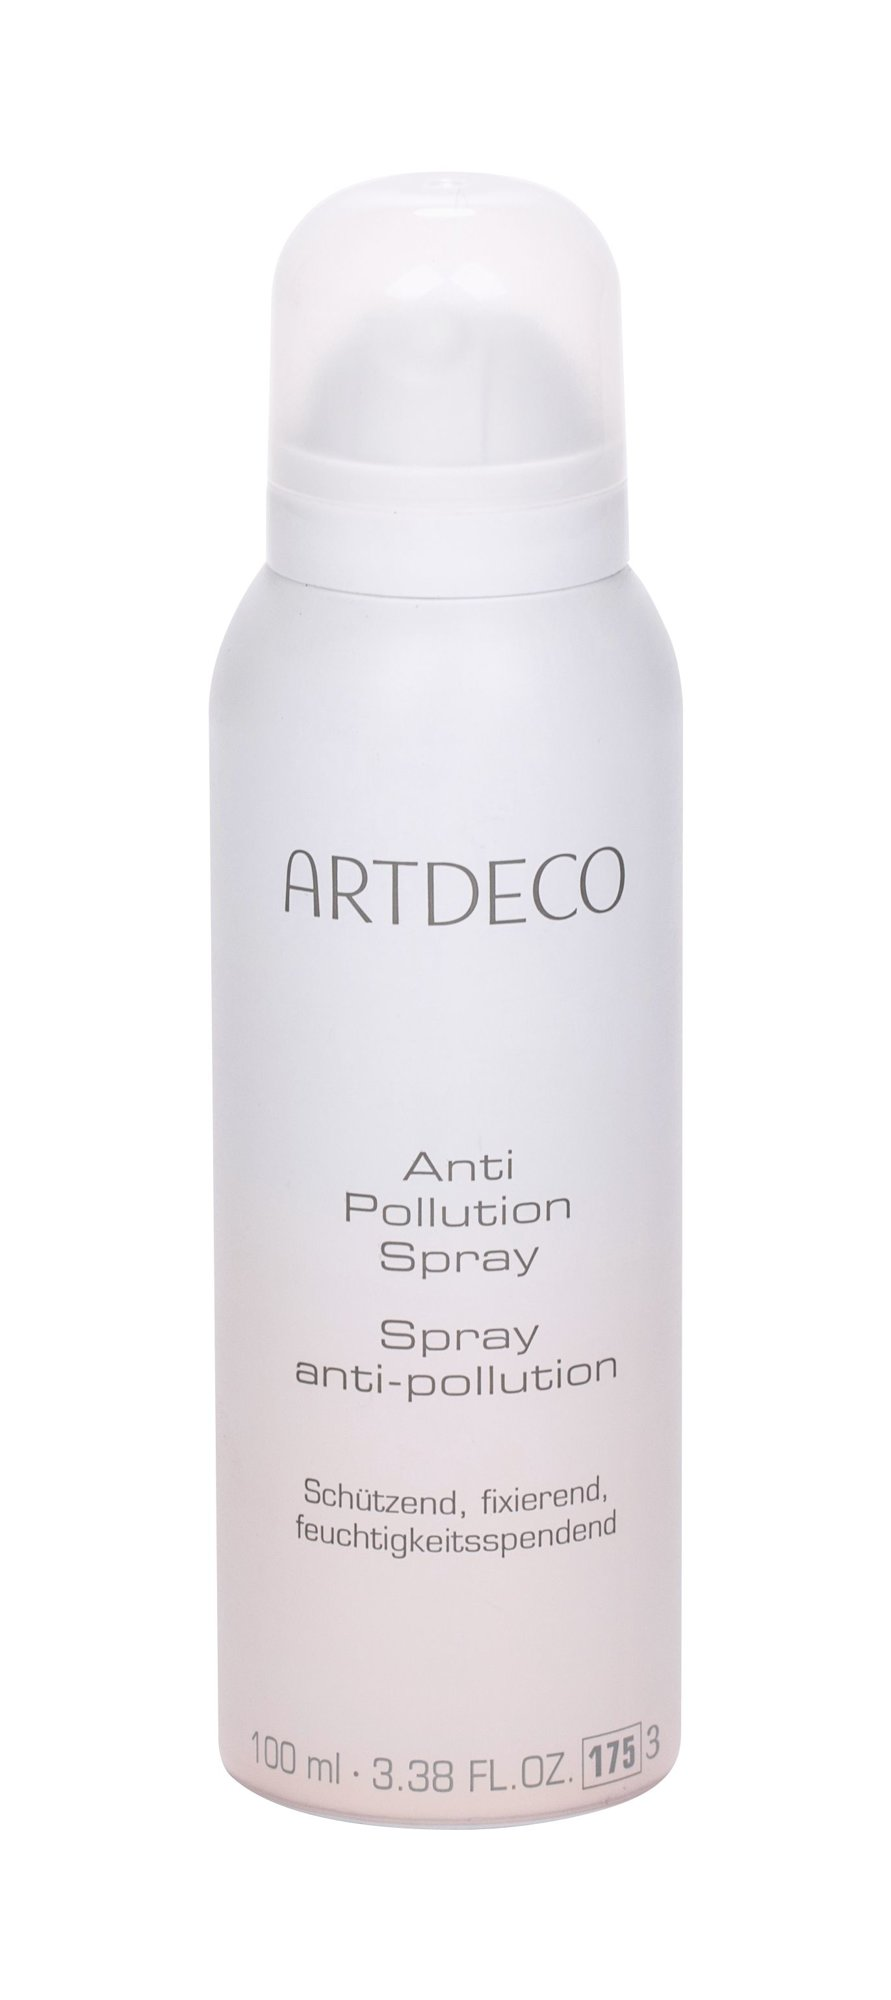 Artdeco Anti Pollution Spray Facial Lotion and Spray 100ml